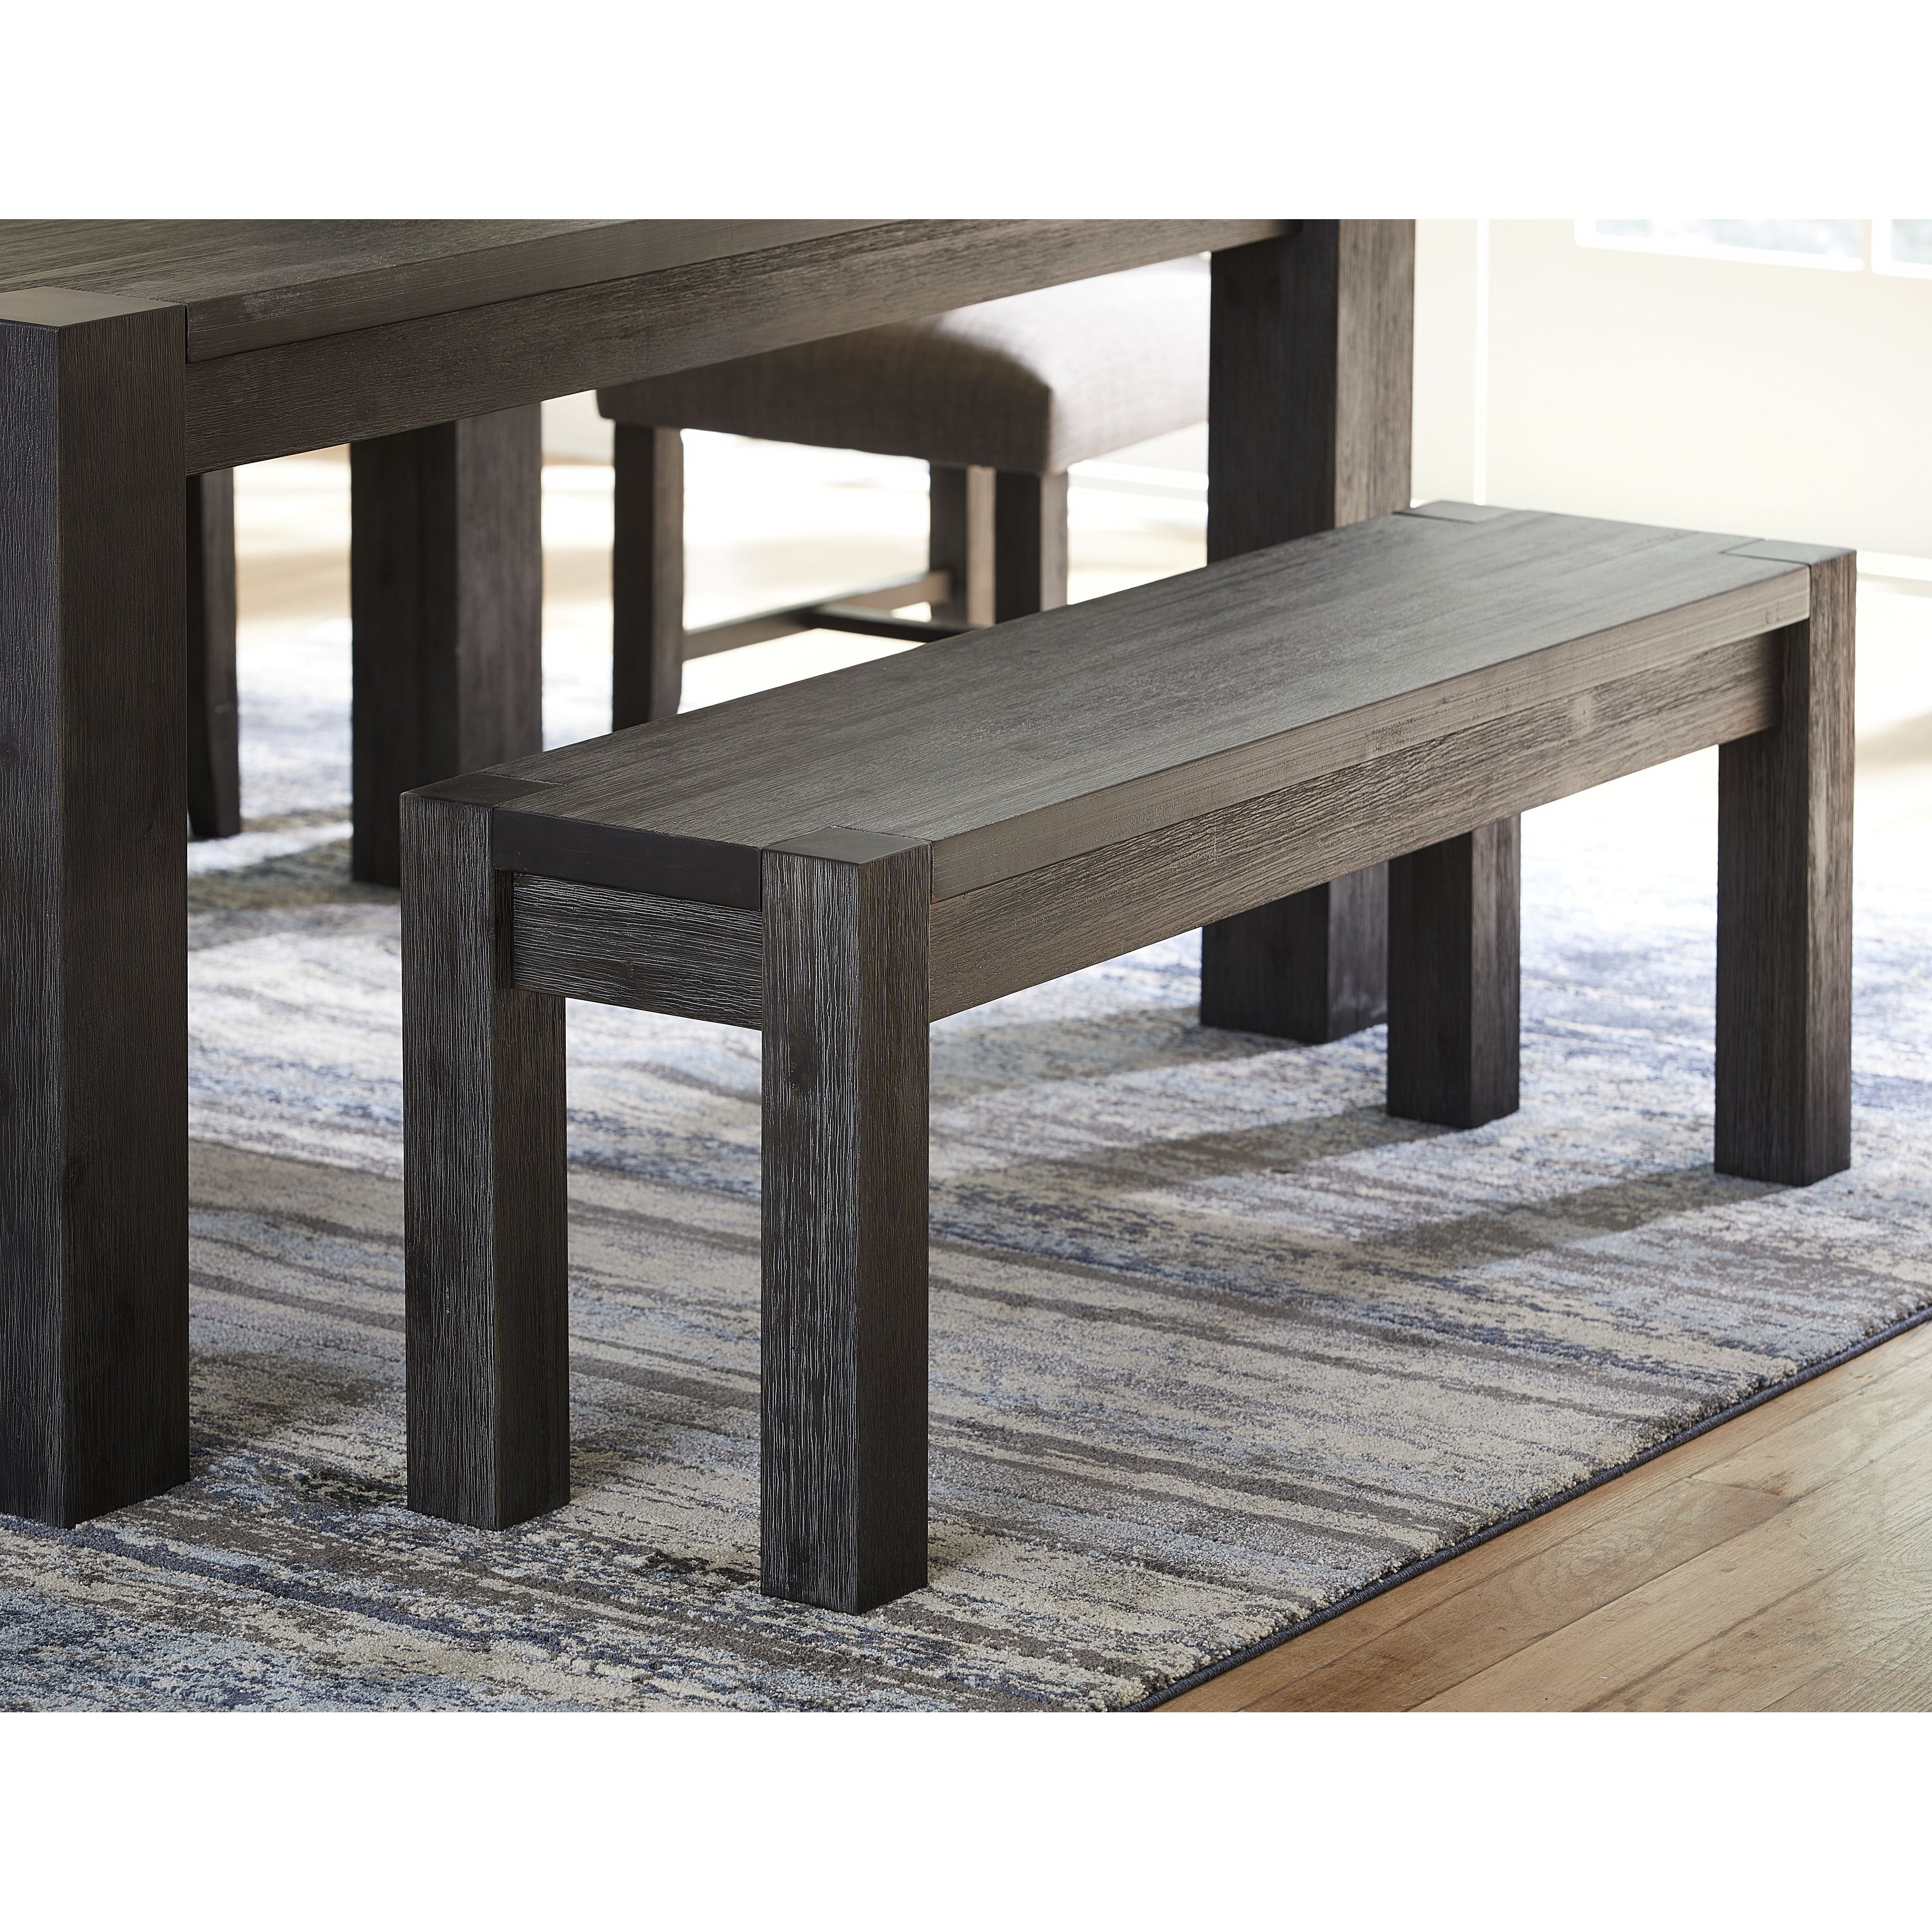 Meadow Solid Wood Bench In Graphite Overstock 31128454